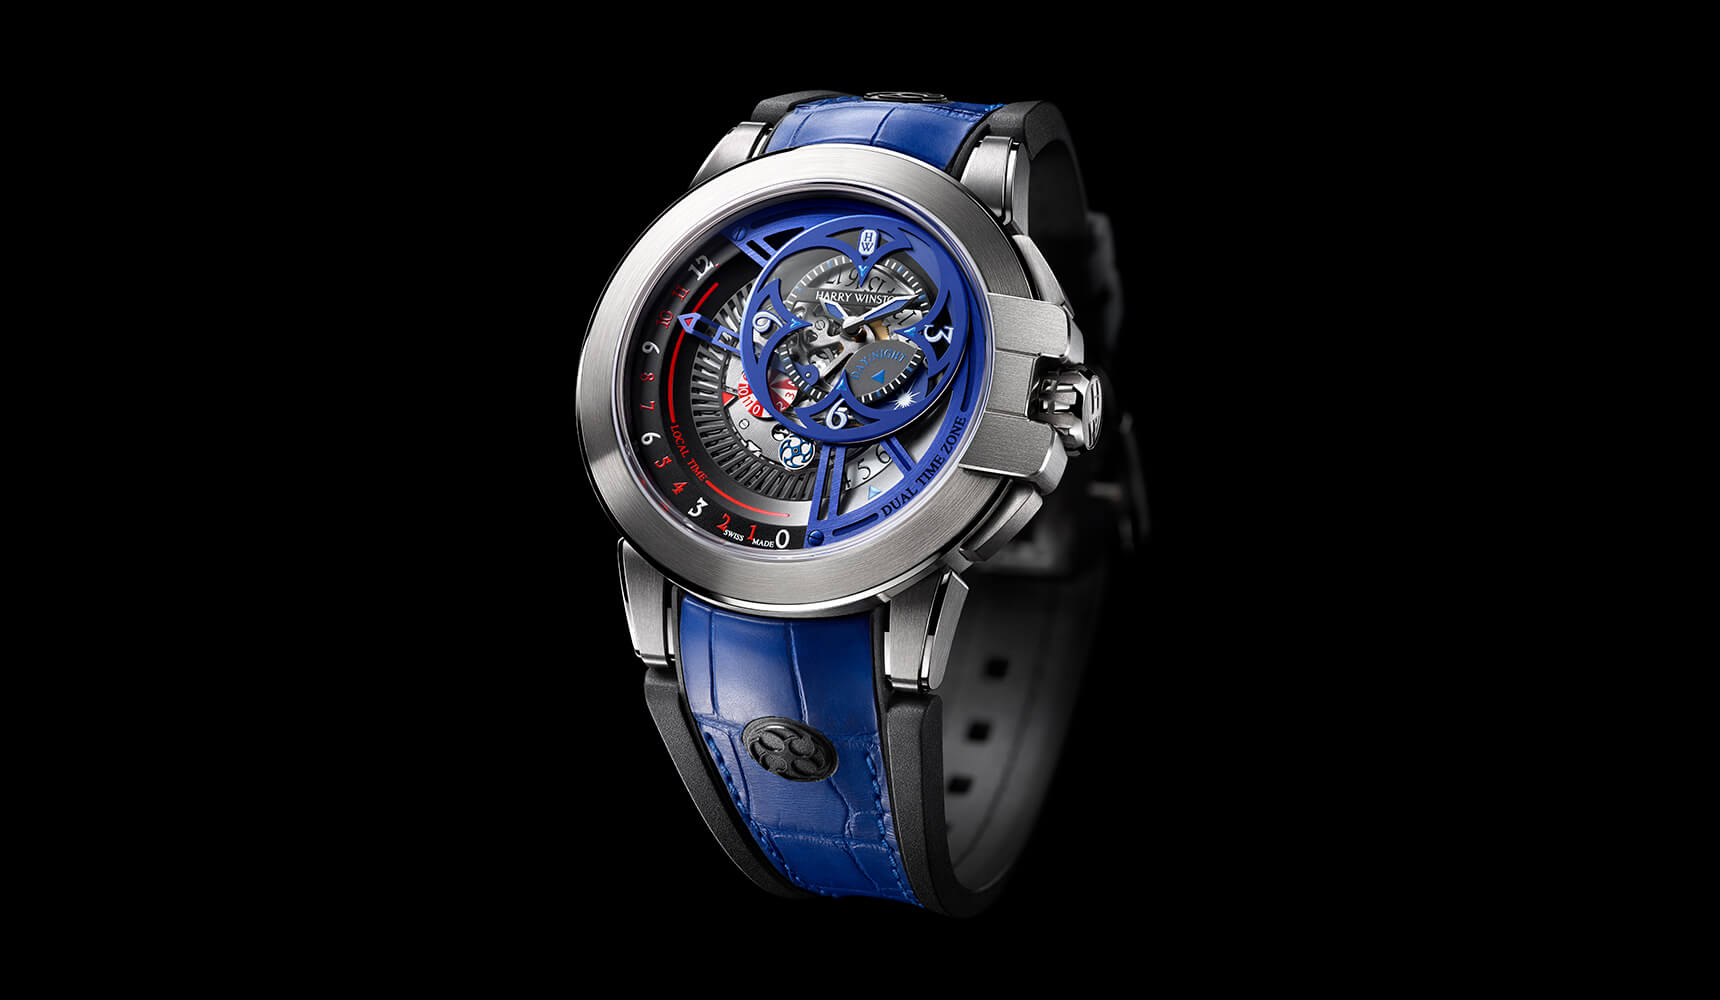 Ocean Dual Time Retrograde Only Watch 2015